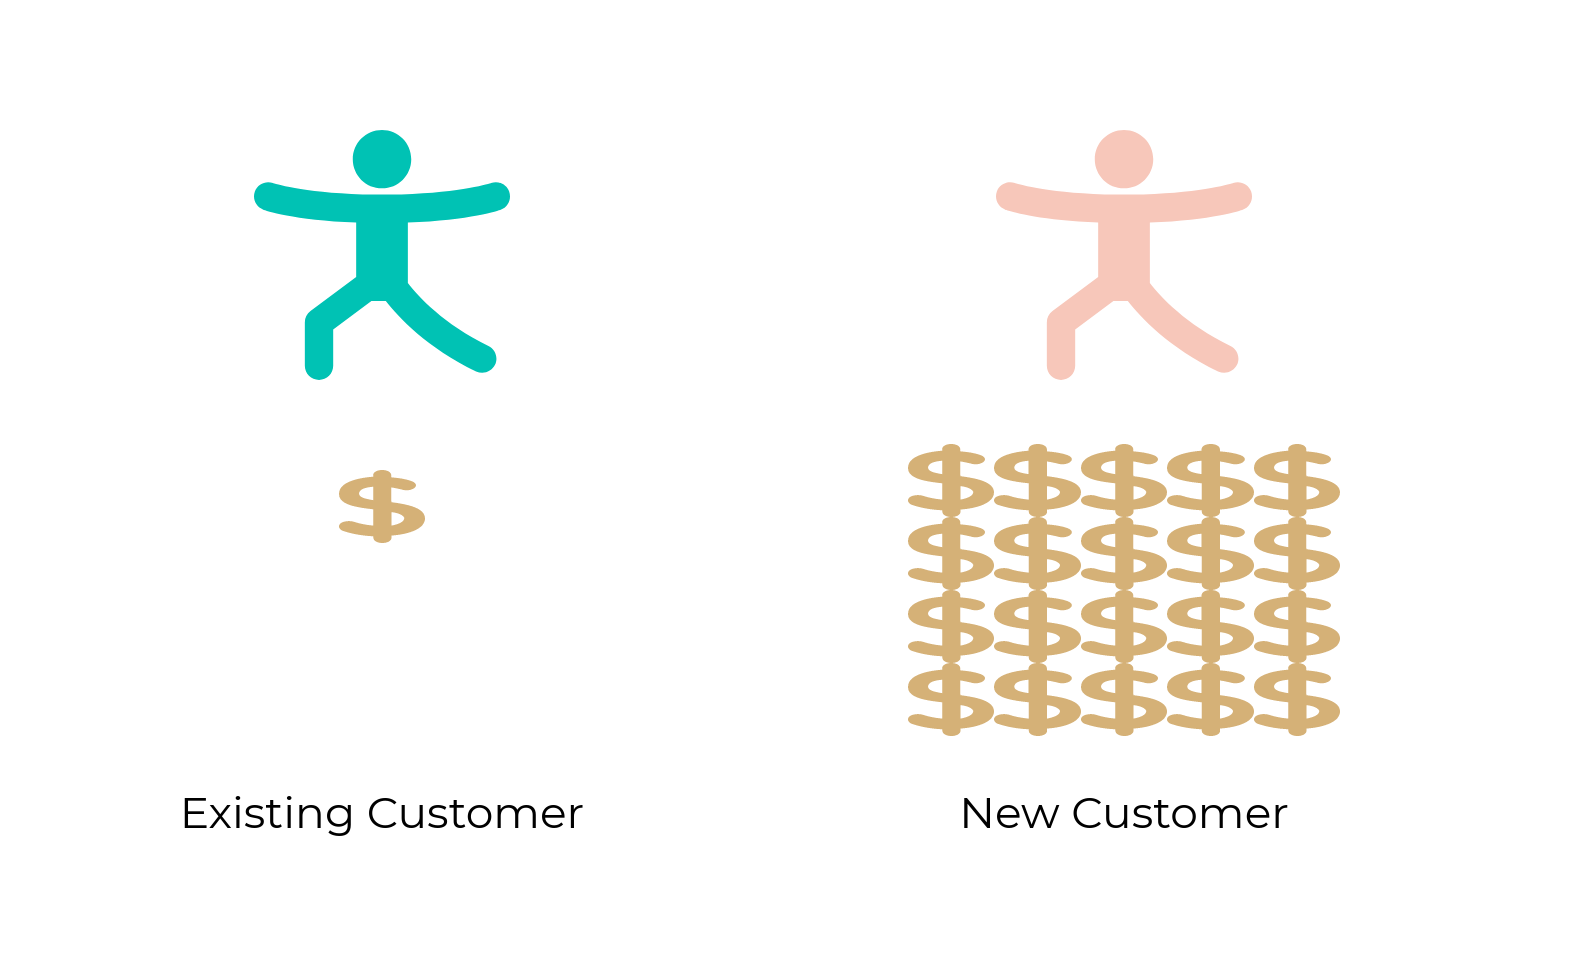 Existing Clients versus New Clients Marketing